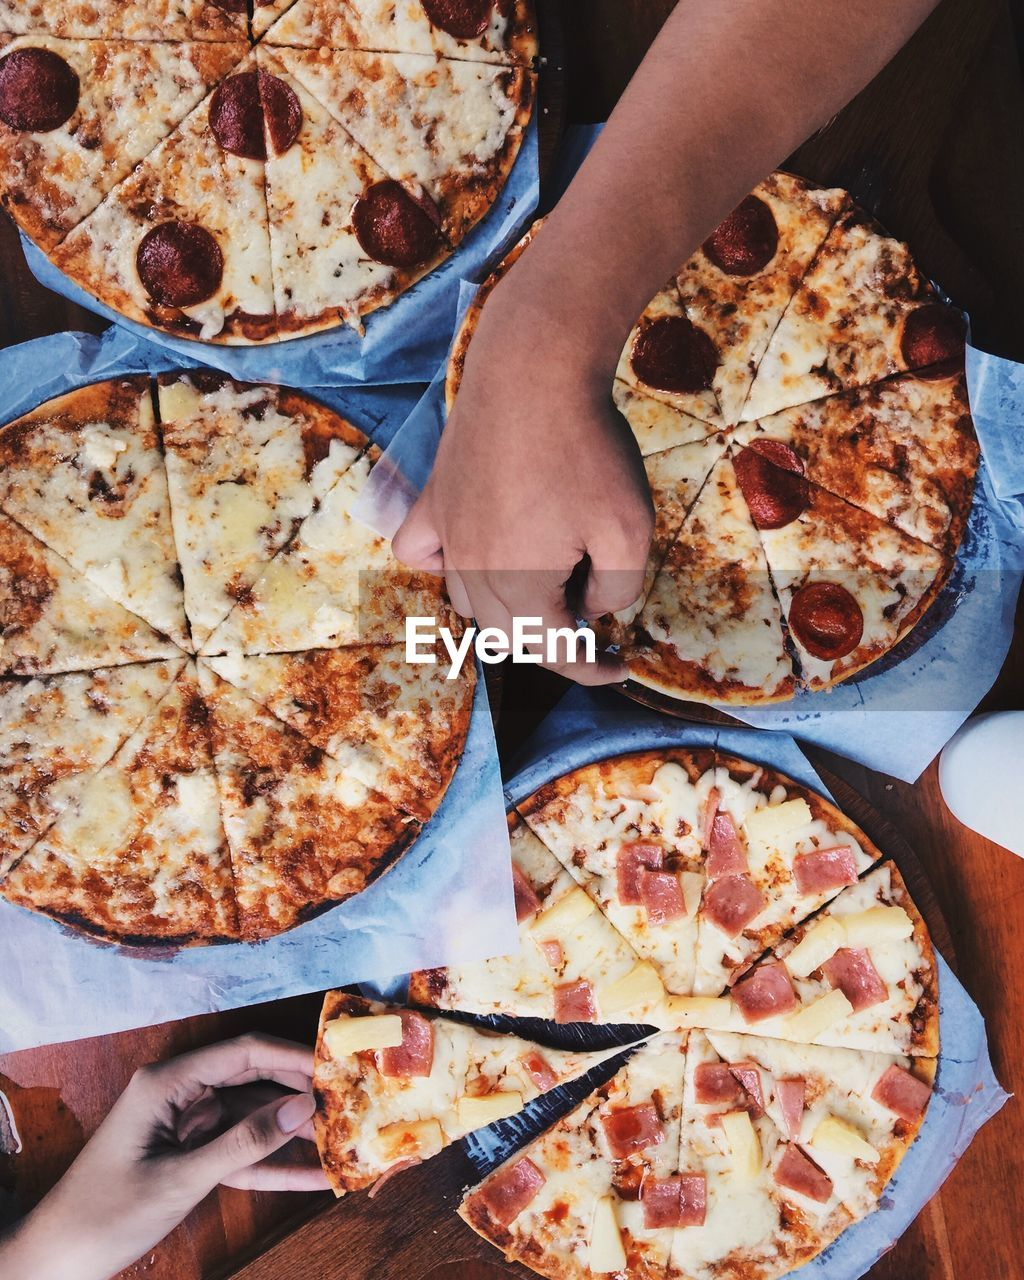 Cropped Image Of Hands Holding Pizza On Table